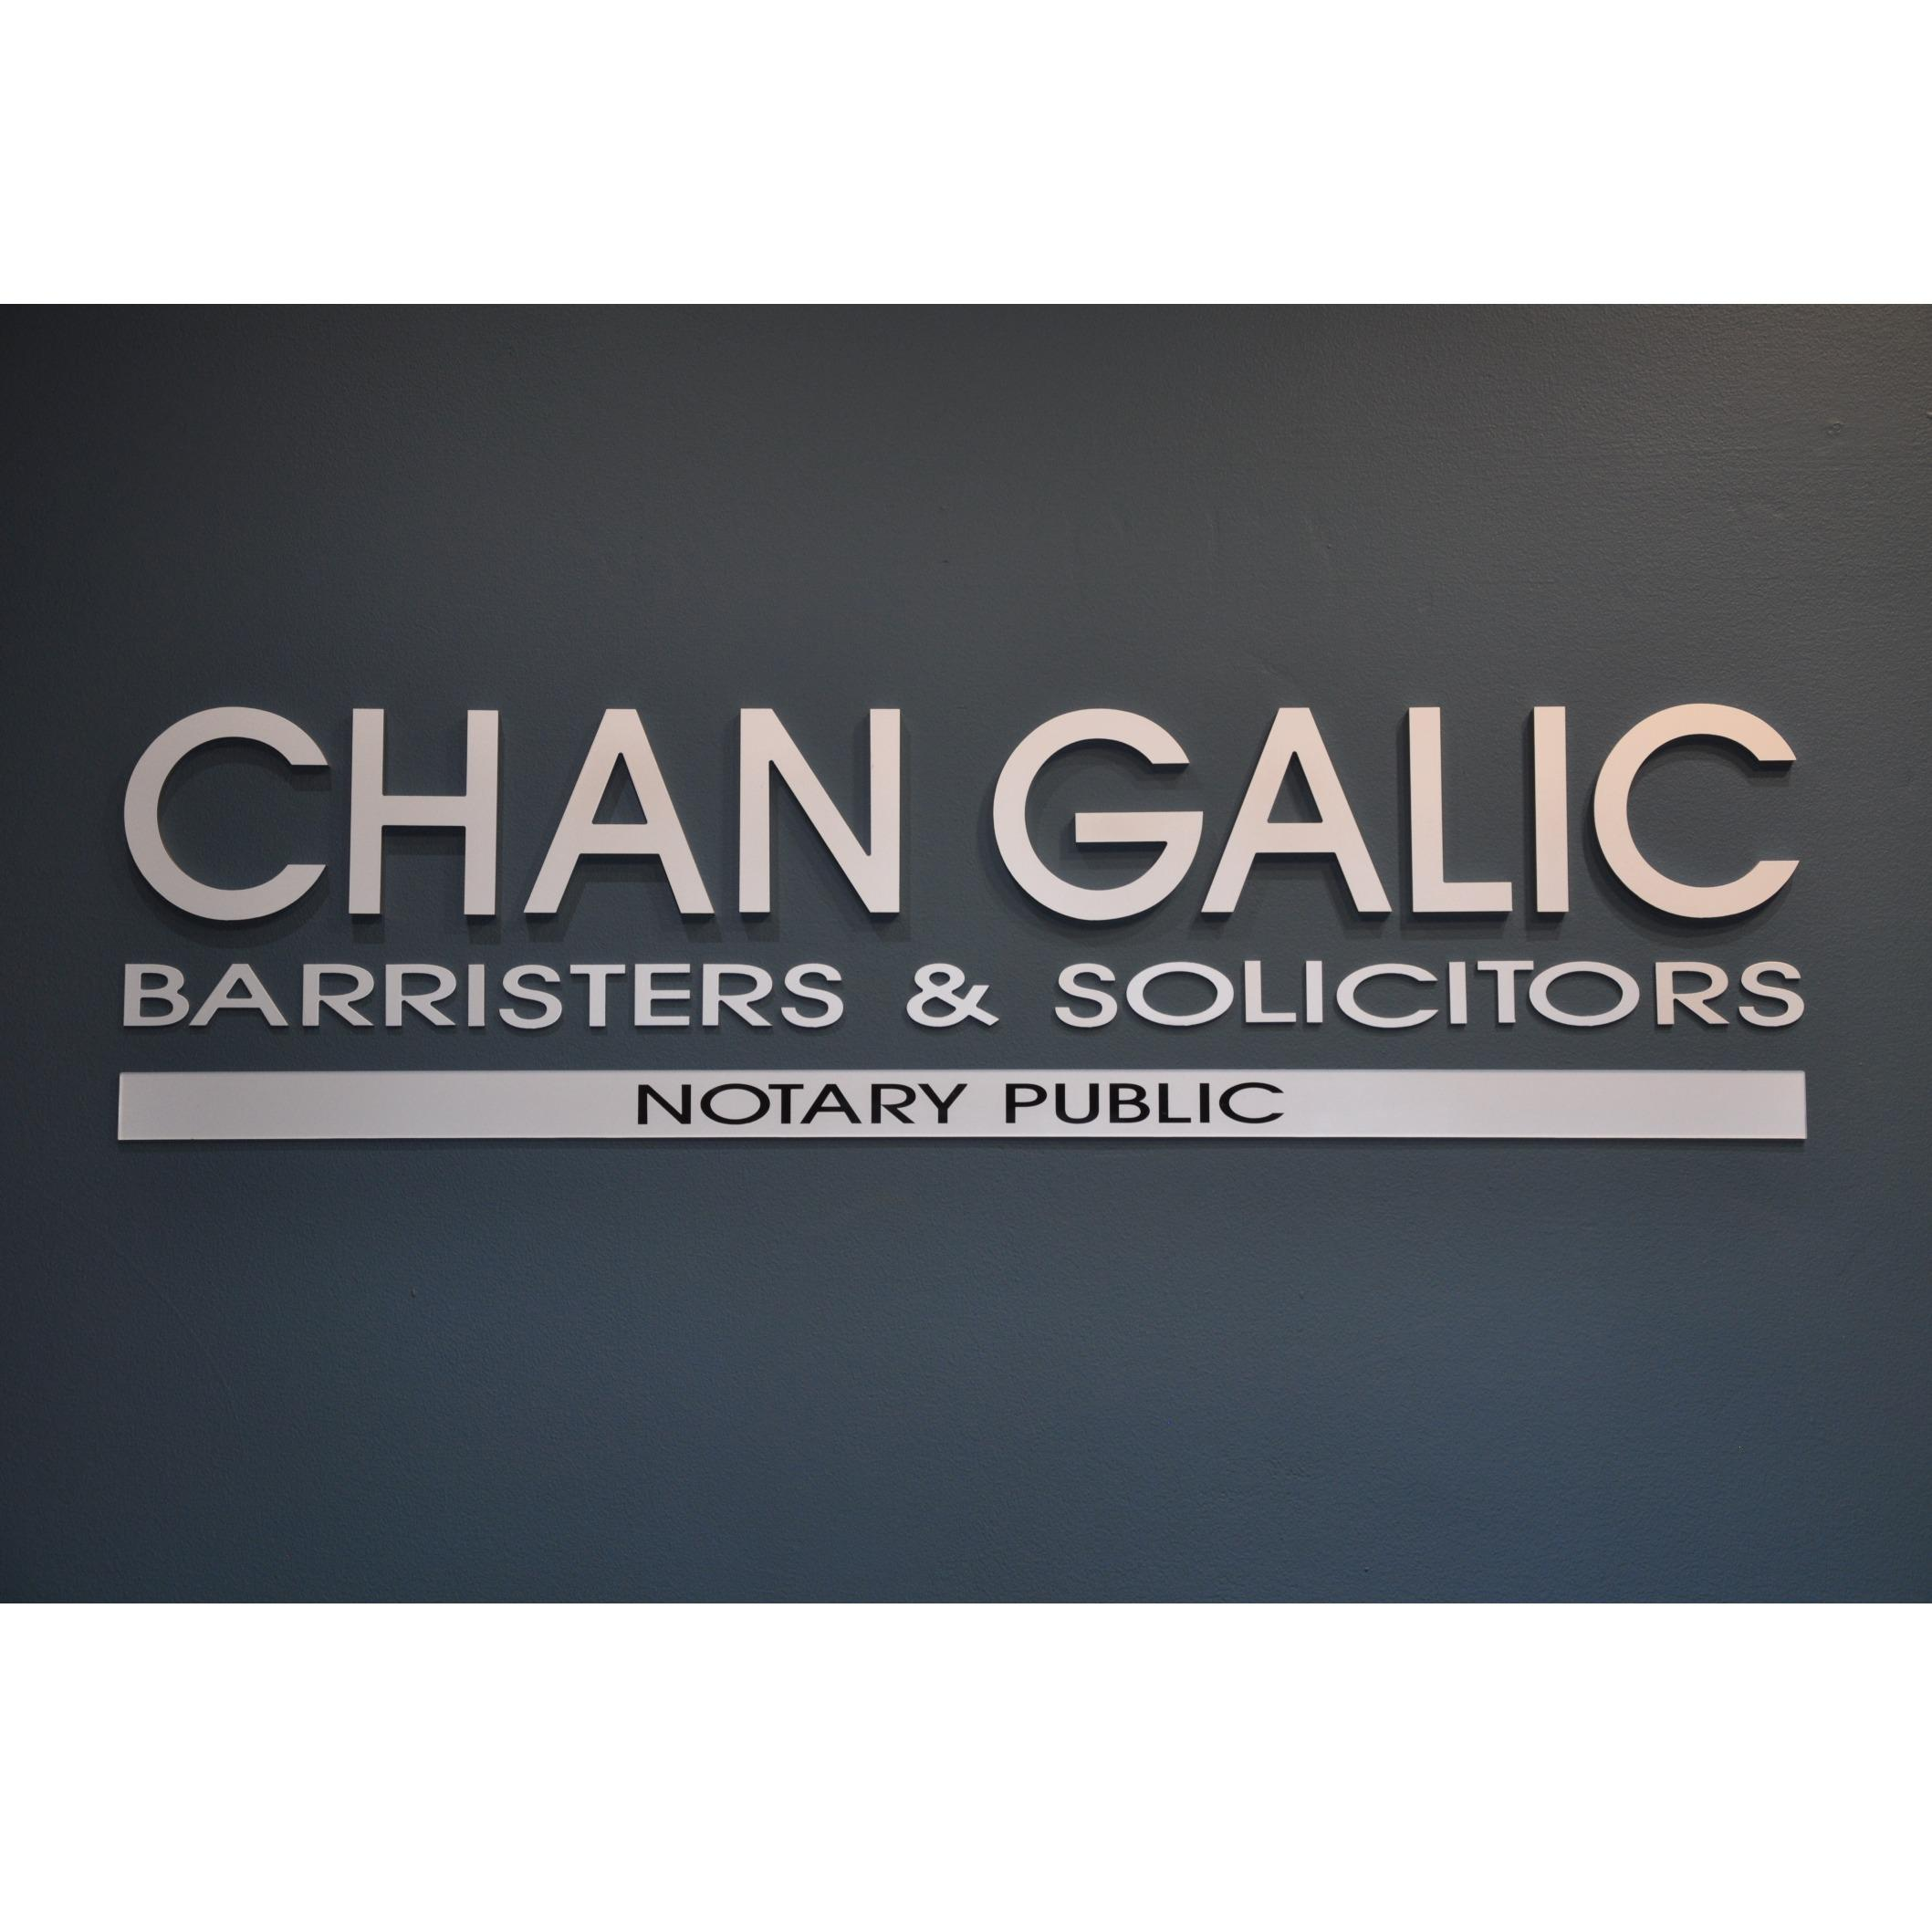 Chan Galic Barristers, Solicitors & Notary Public - South Perth, WA 6151 - (08) 9325 2611 | ShowMeLocal.com